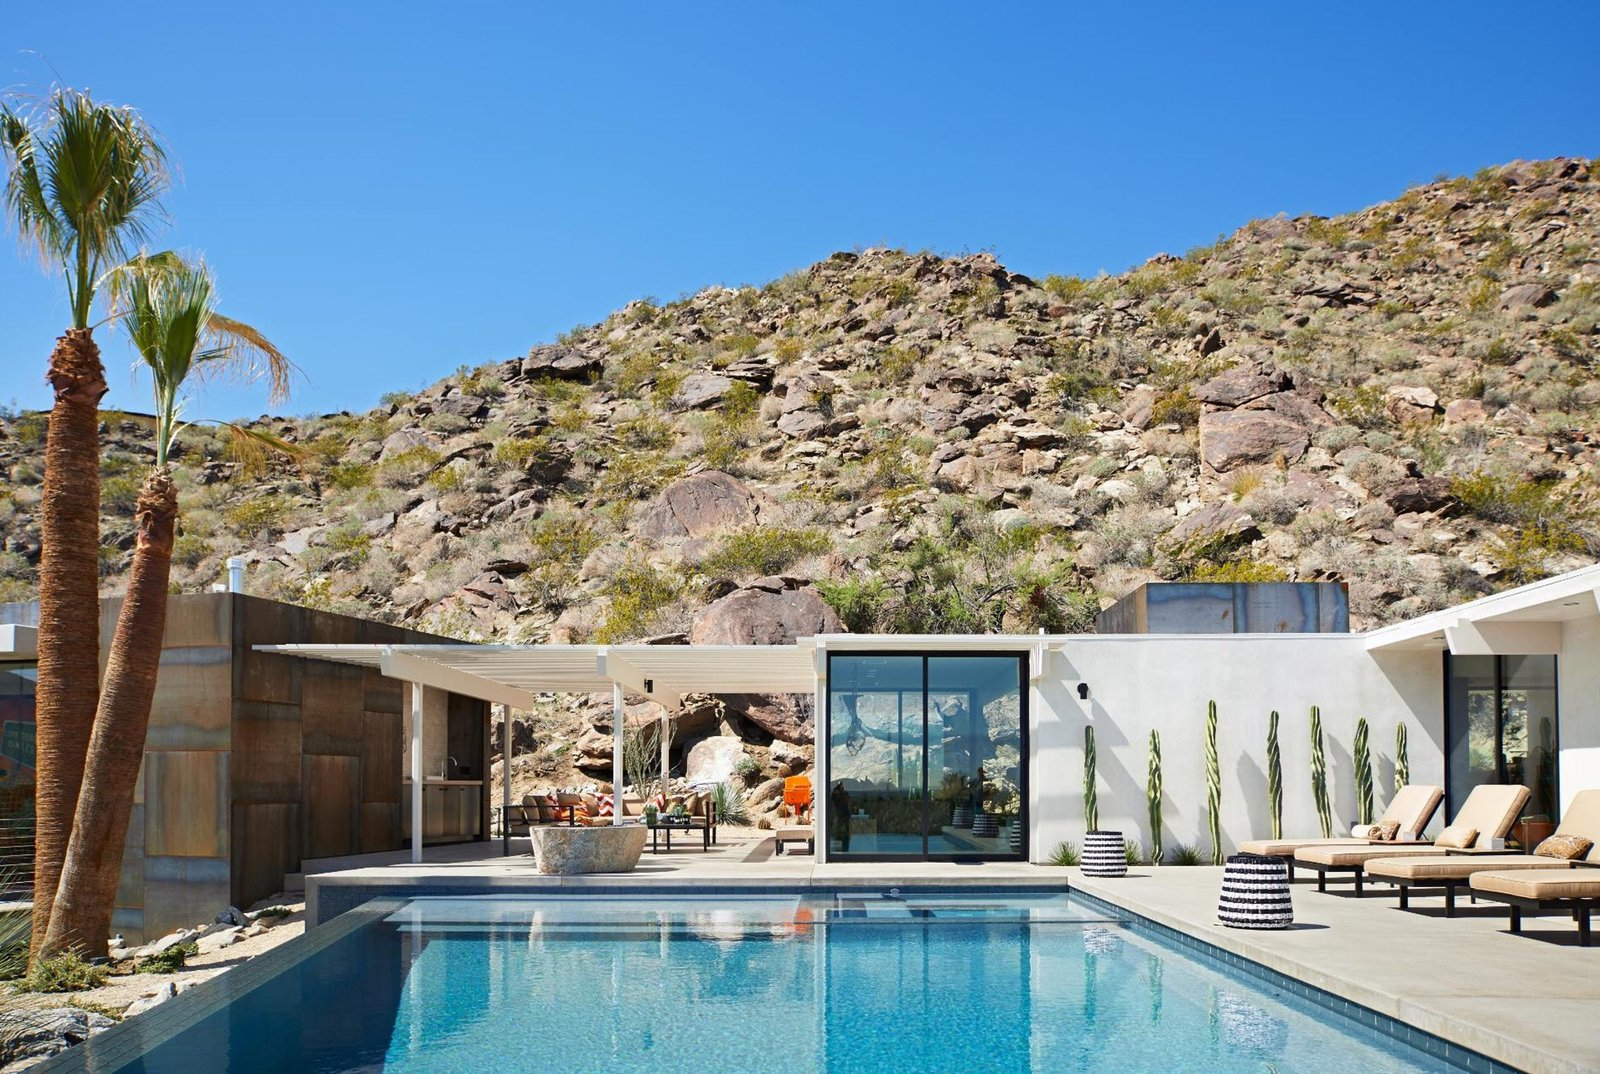 Outdoor, Trees, Boulders, Swimming Pools, Tubs, Shower, Concrete Patio, Porch, Deck, Desert, Back Yard, and Salt Water Pools, Tubs, Shower  On the Rocks